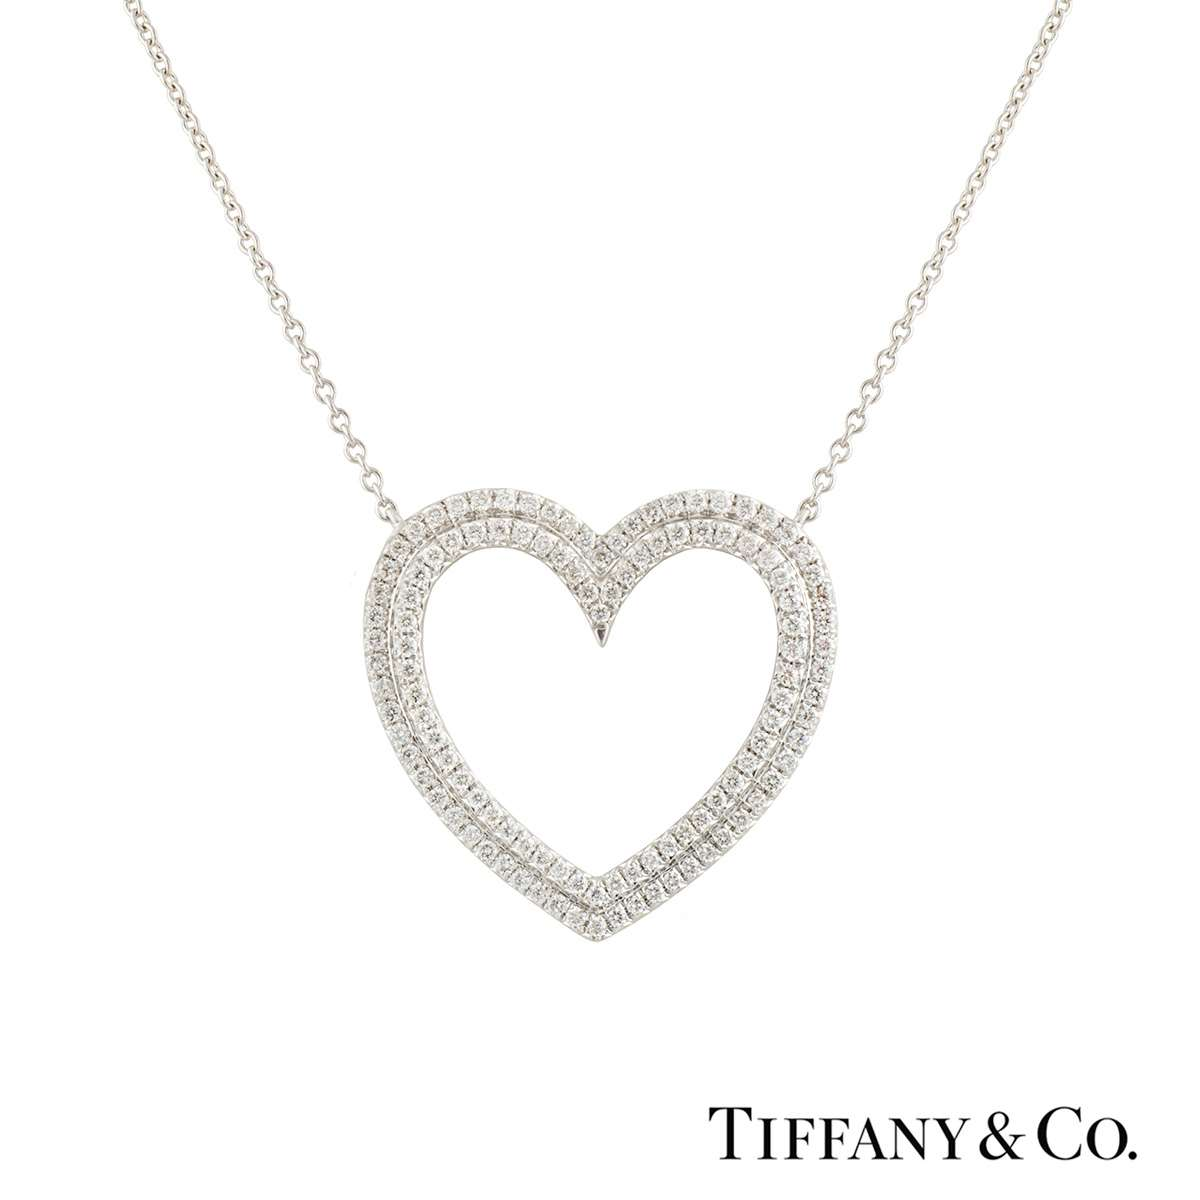 Tiffany & Co. Metro Heart Pendant